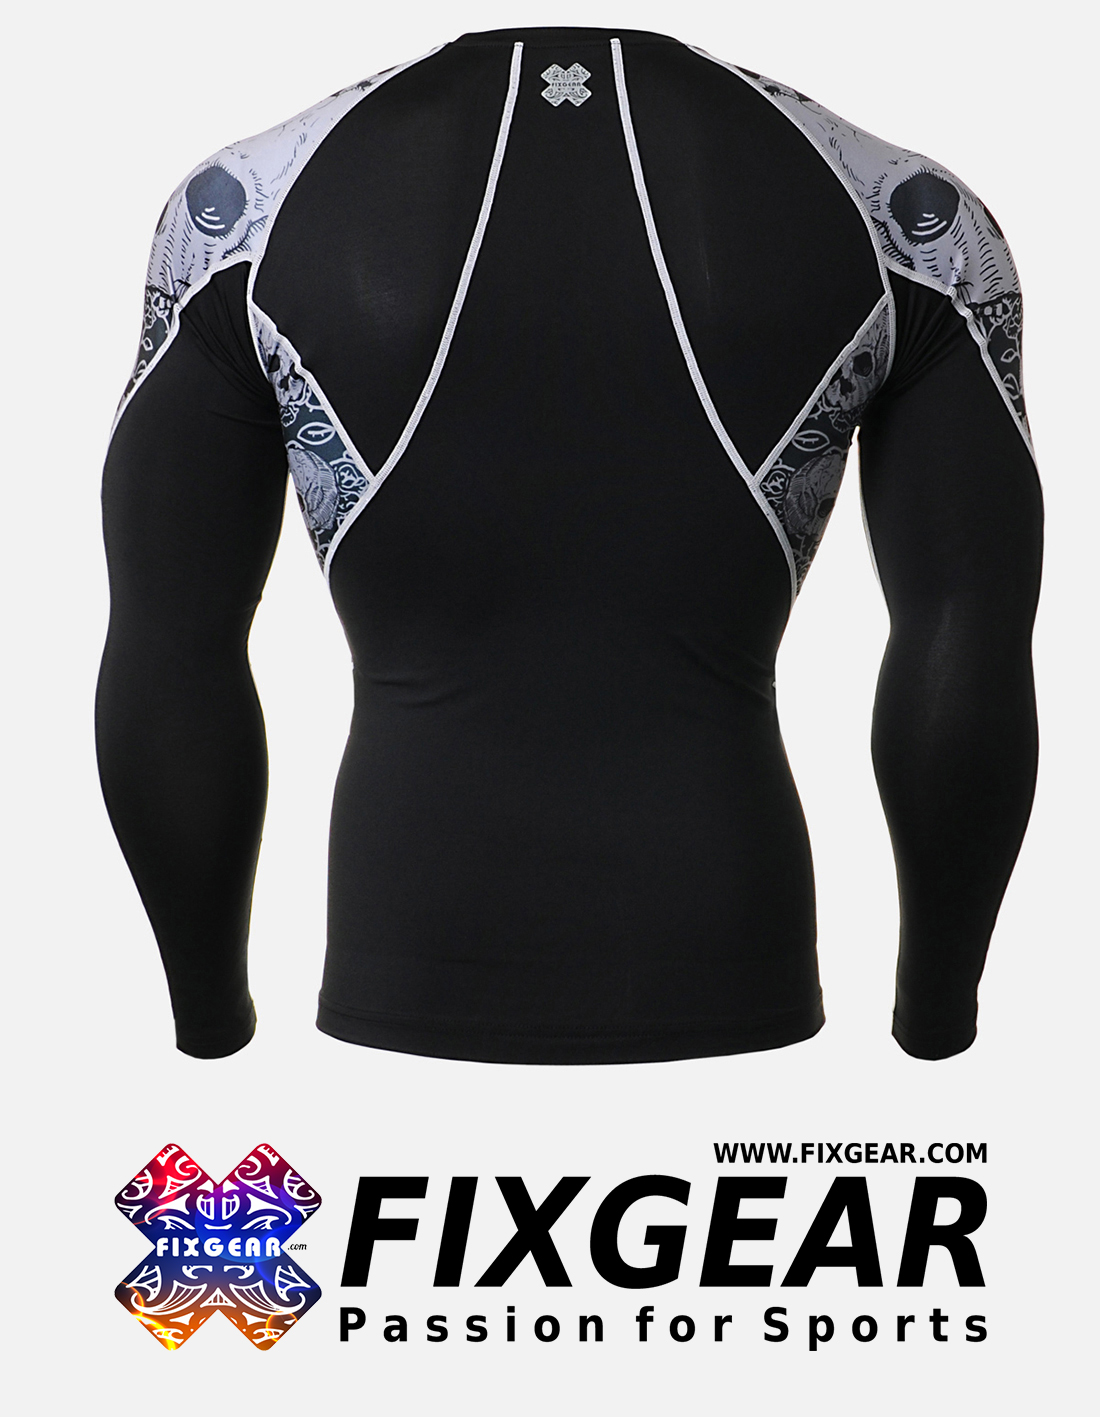 FIXGEAR C2L-B40 Compression Base Layer Shirt